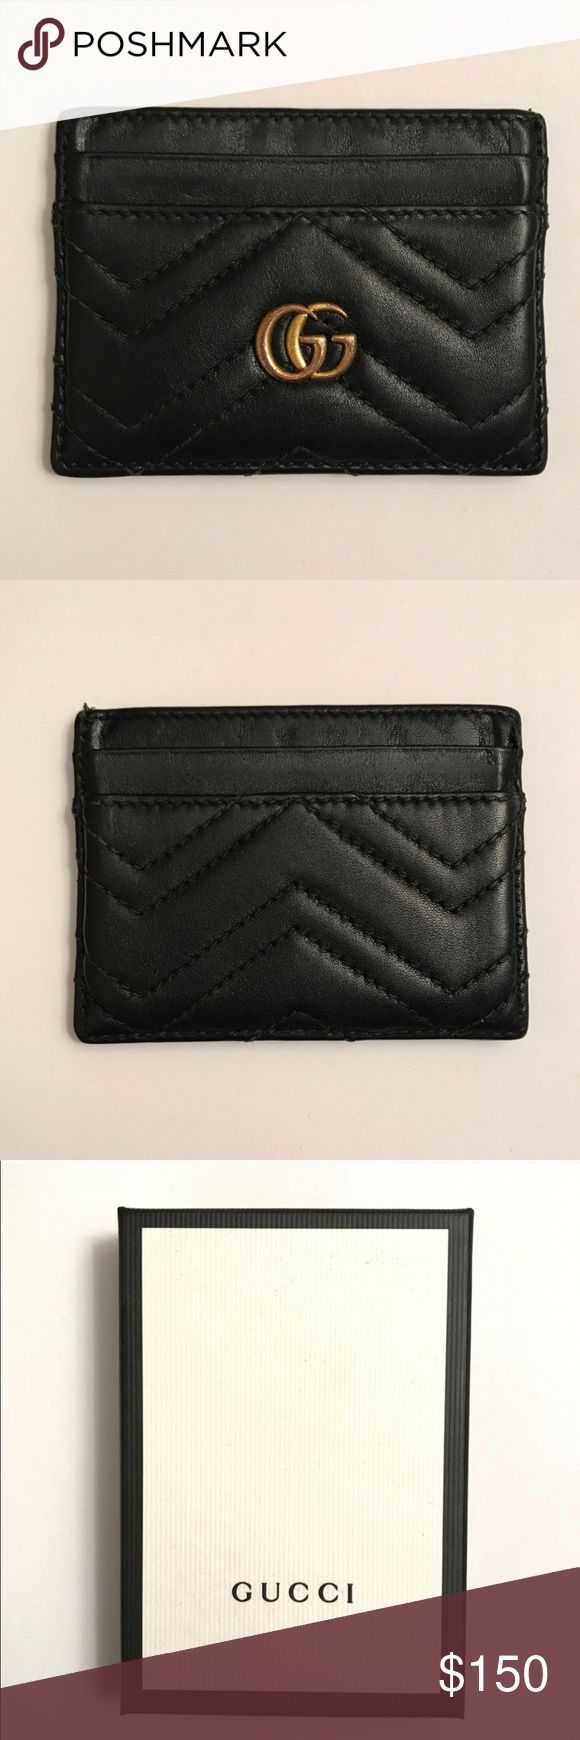 Gucci Card Holder Reposting  Gucci black leather card holder  Signs of use in logo Overall good condition Gucci Accessories Key & Card Holders